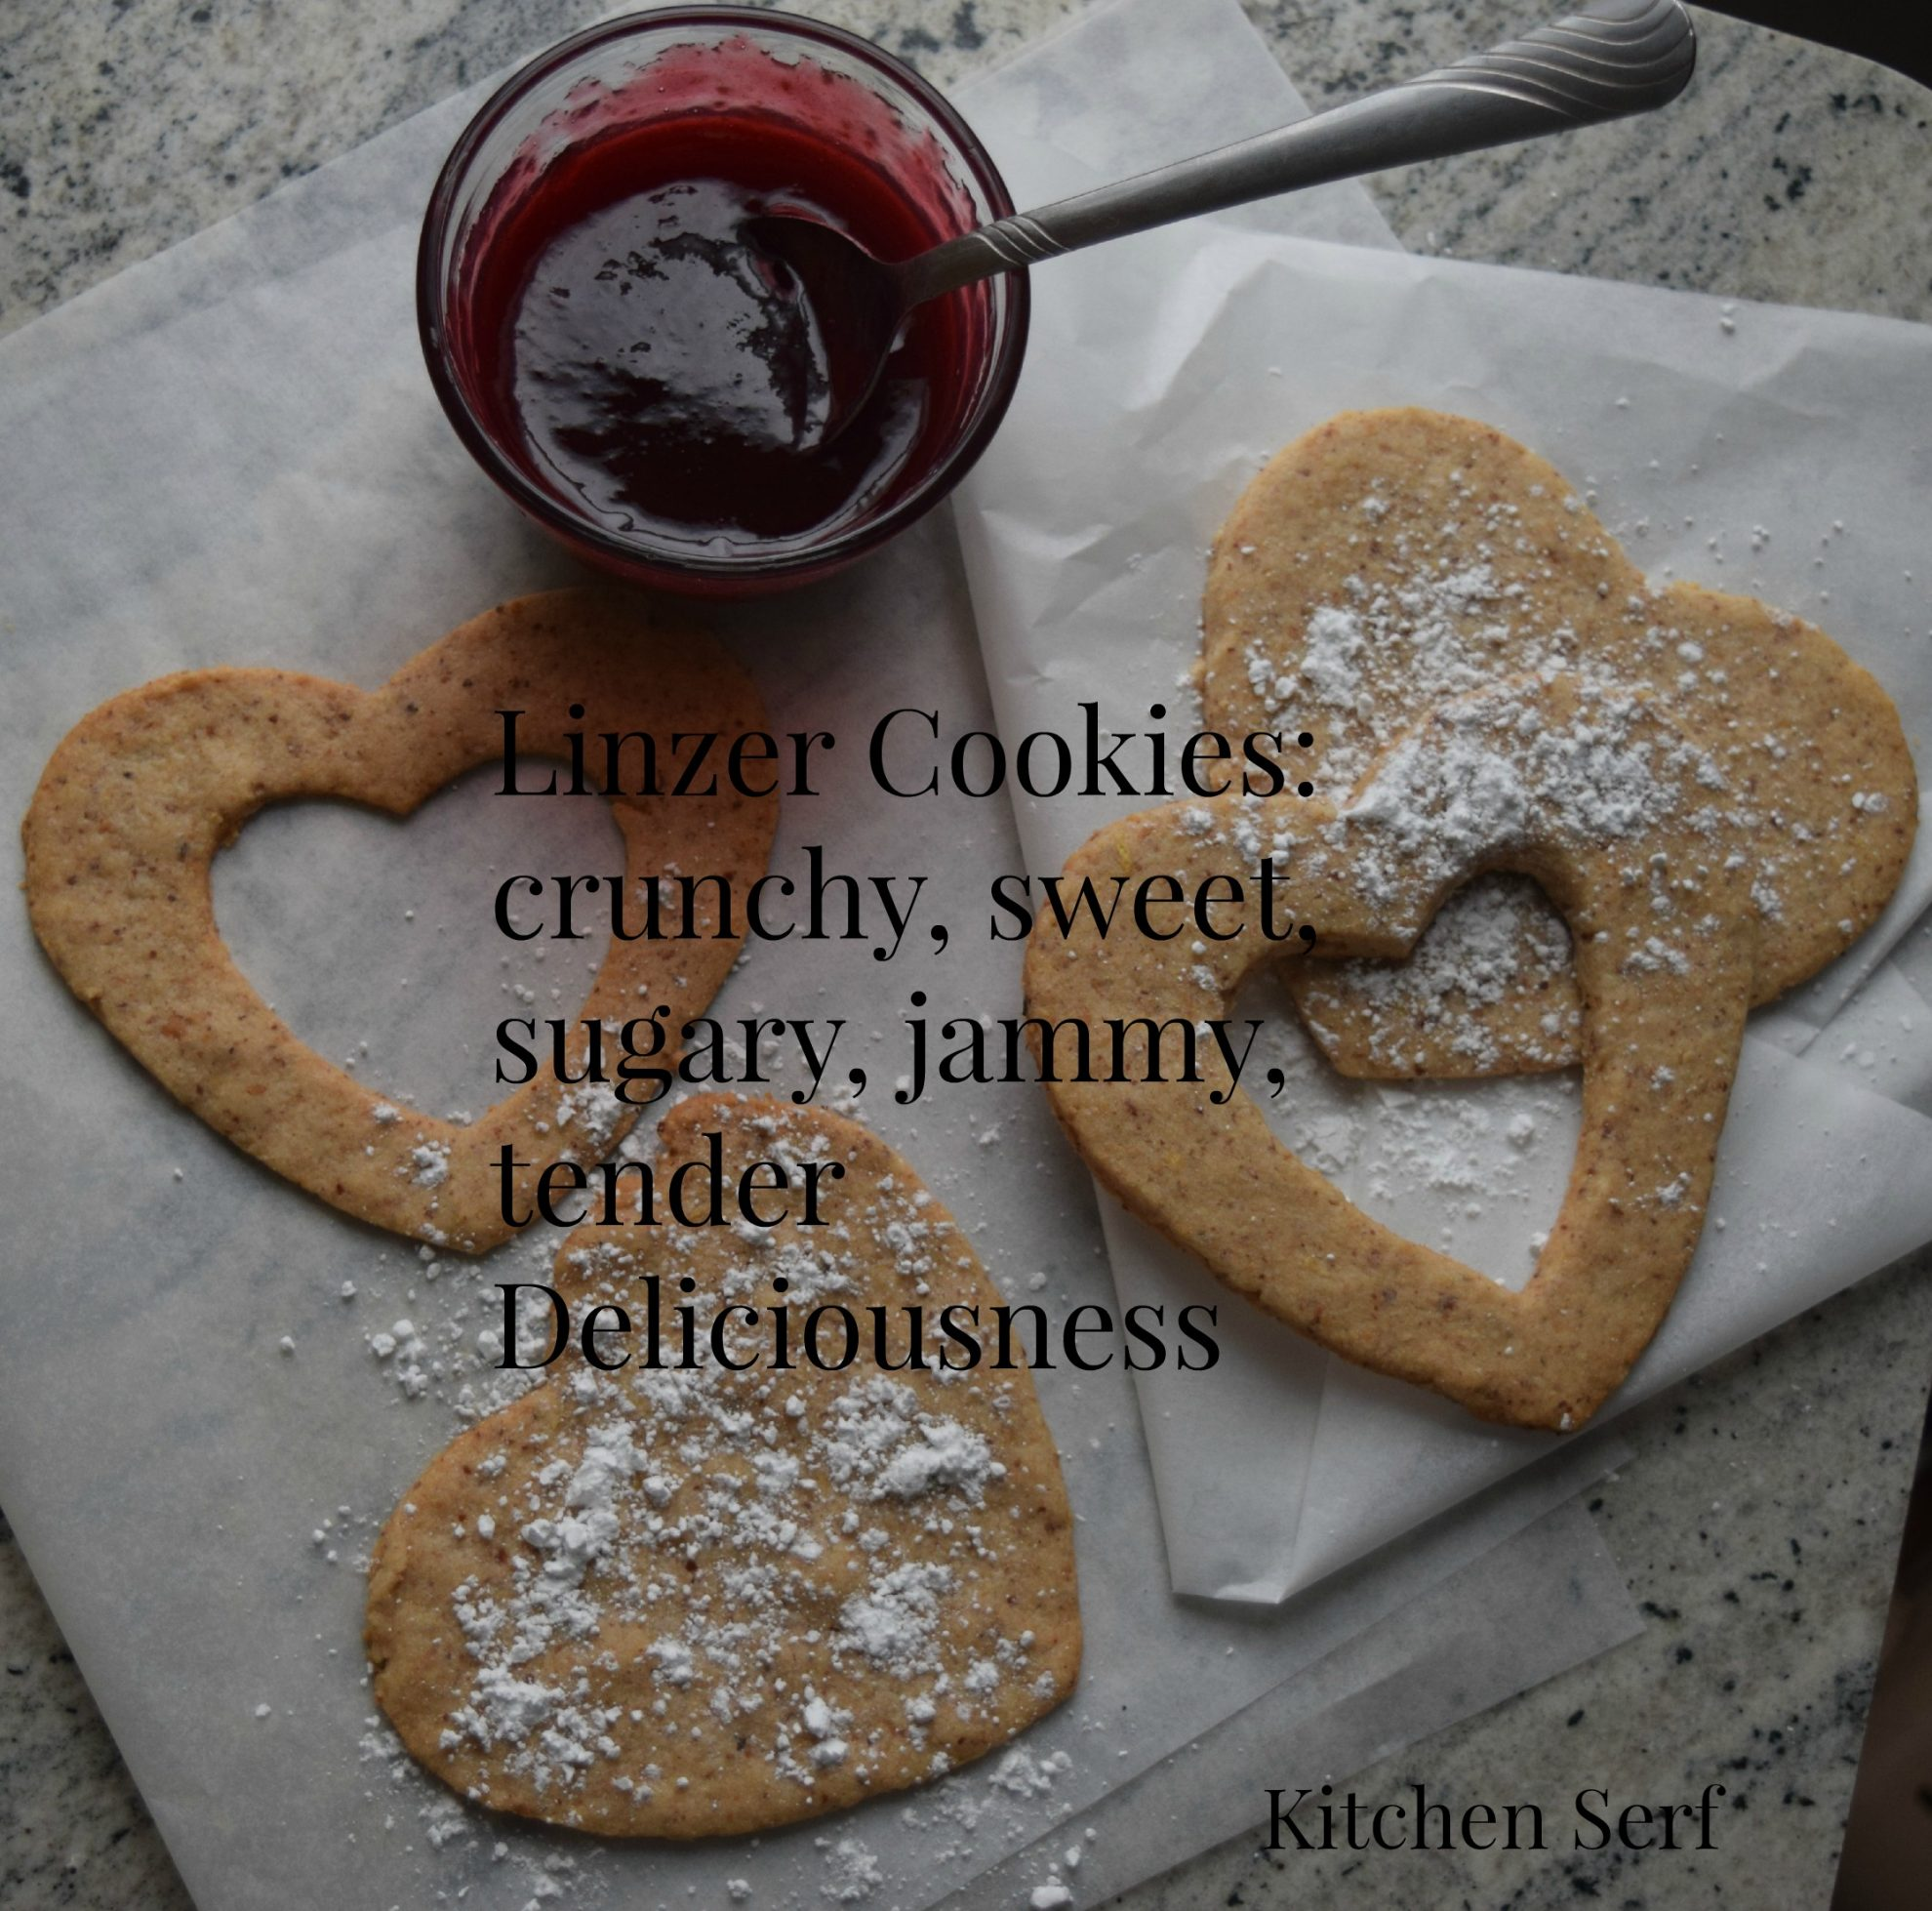 Make Linzer Cookies for Love